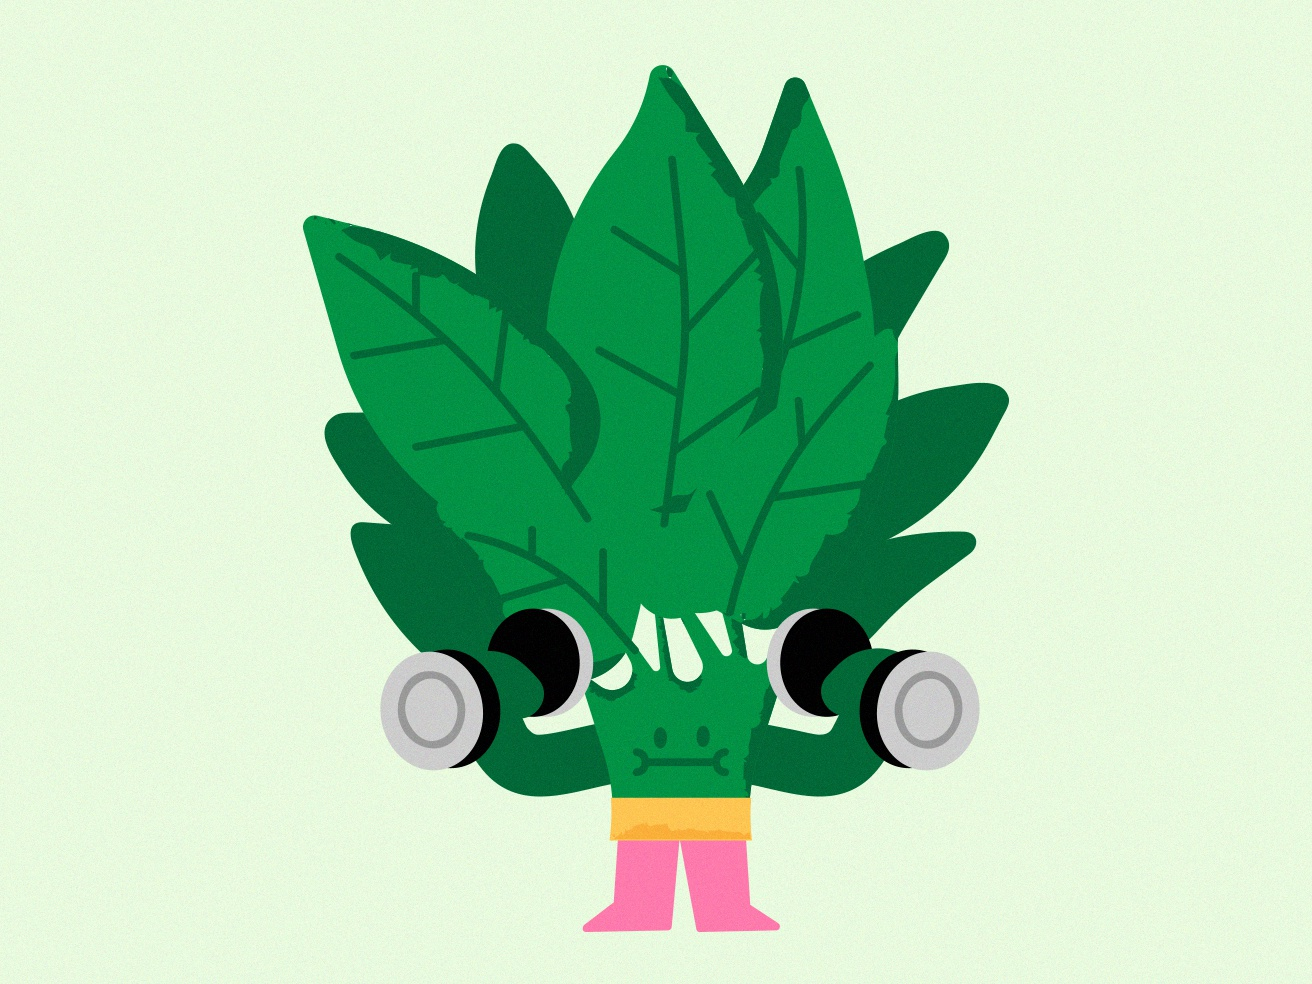 Spinach-ing gym strong chat sticker spinach vegetable vector digital character illustration